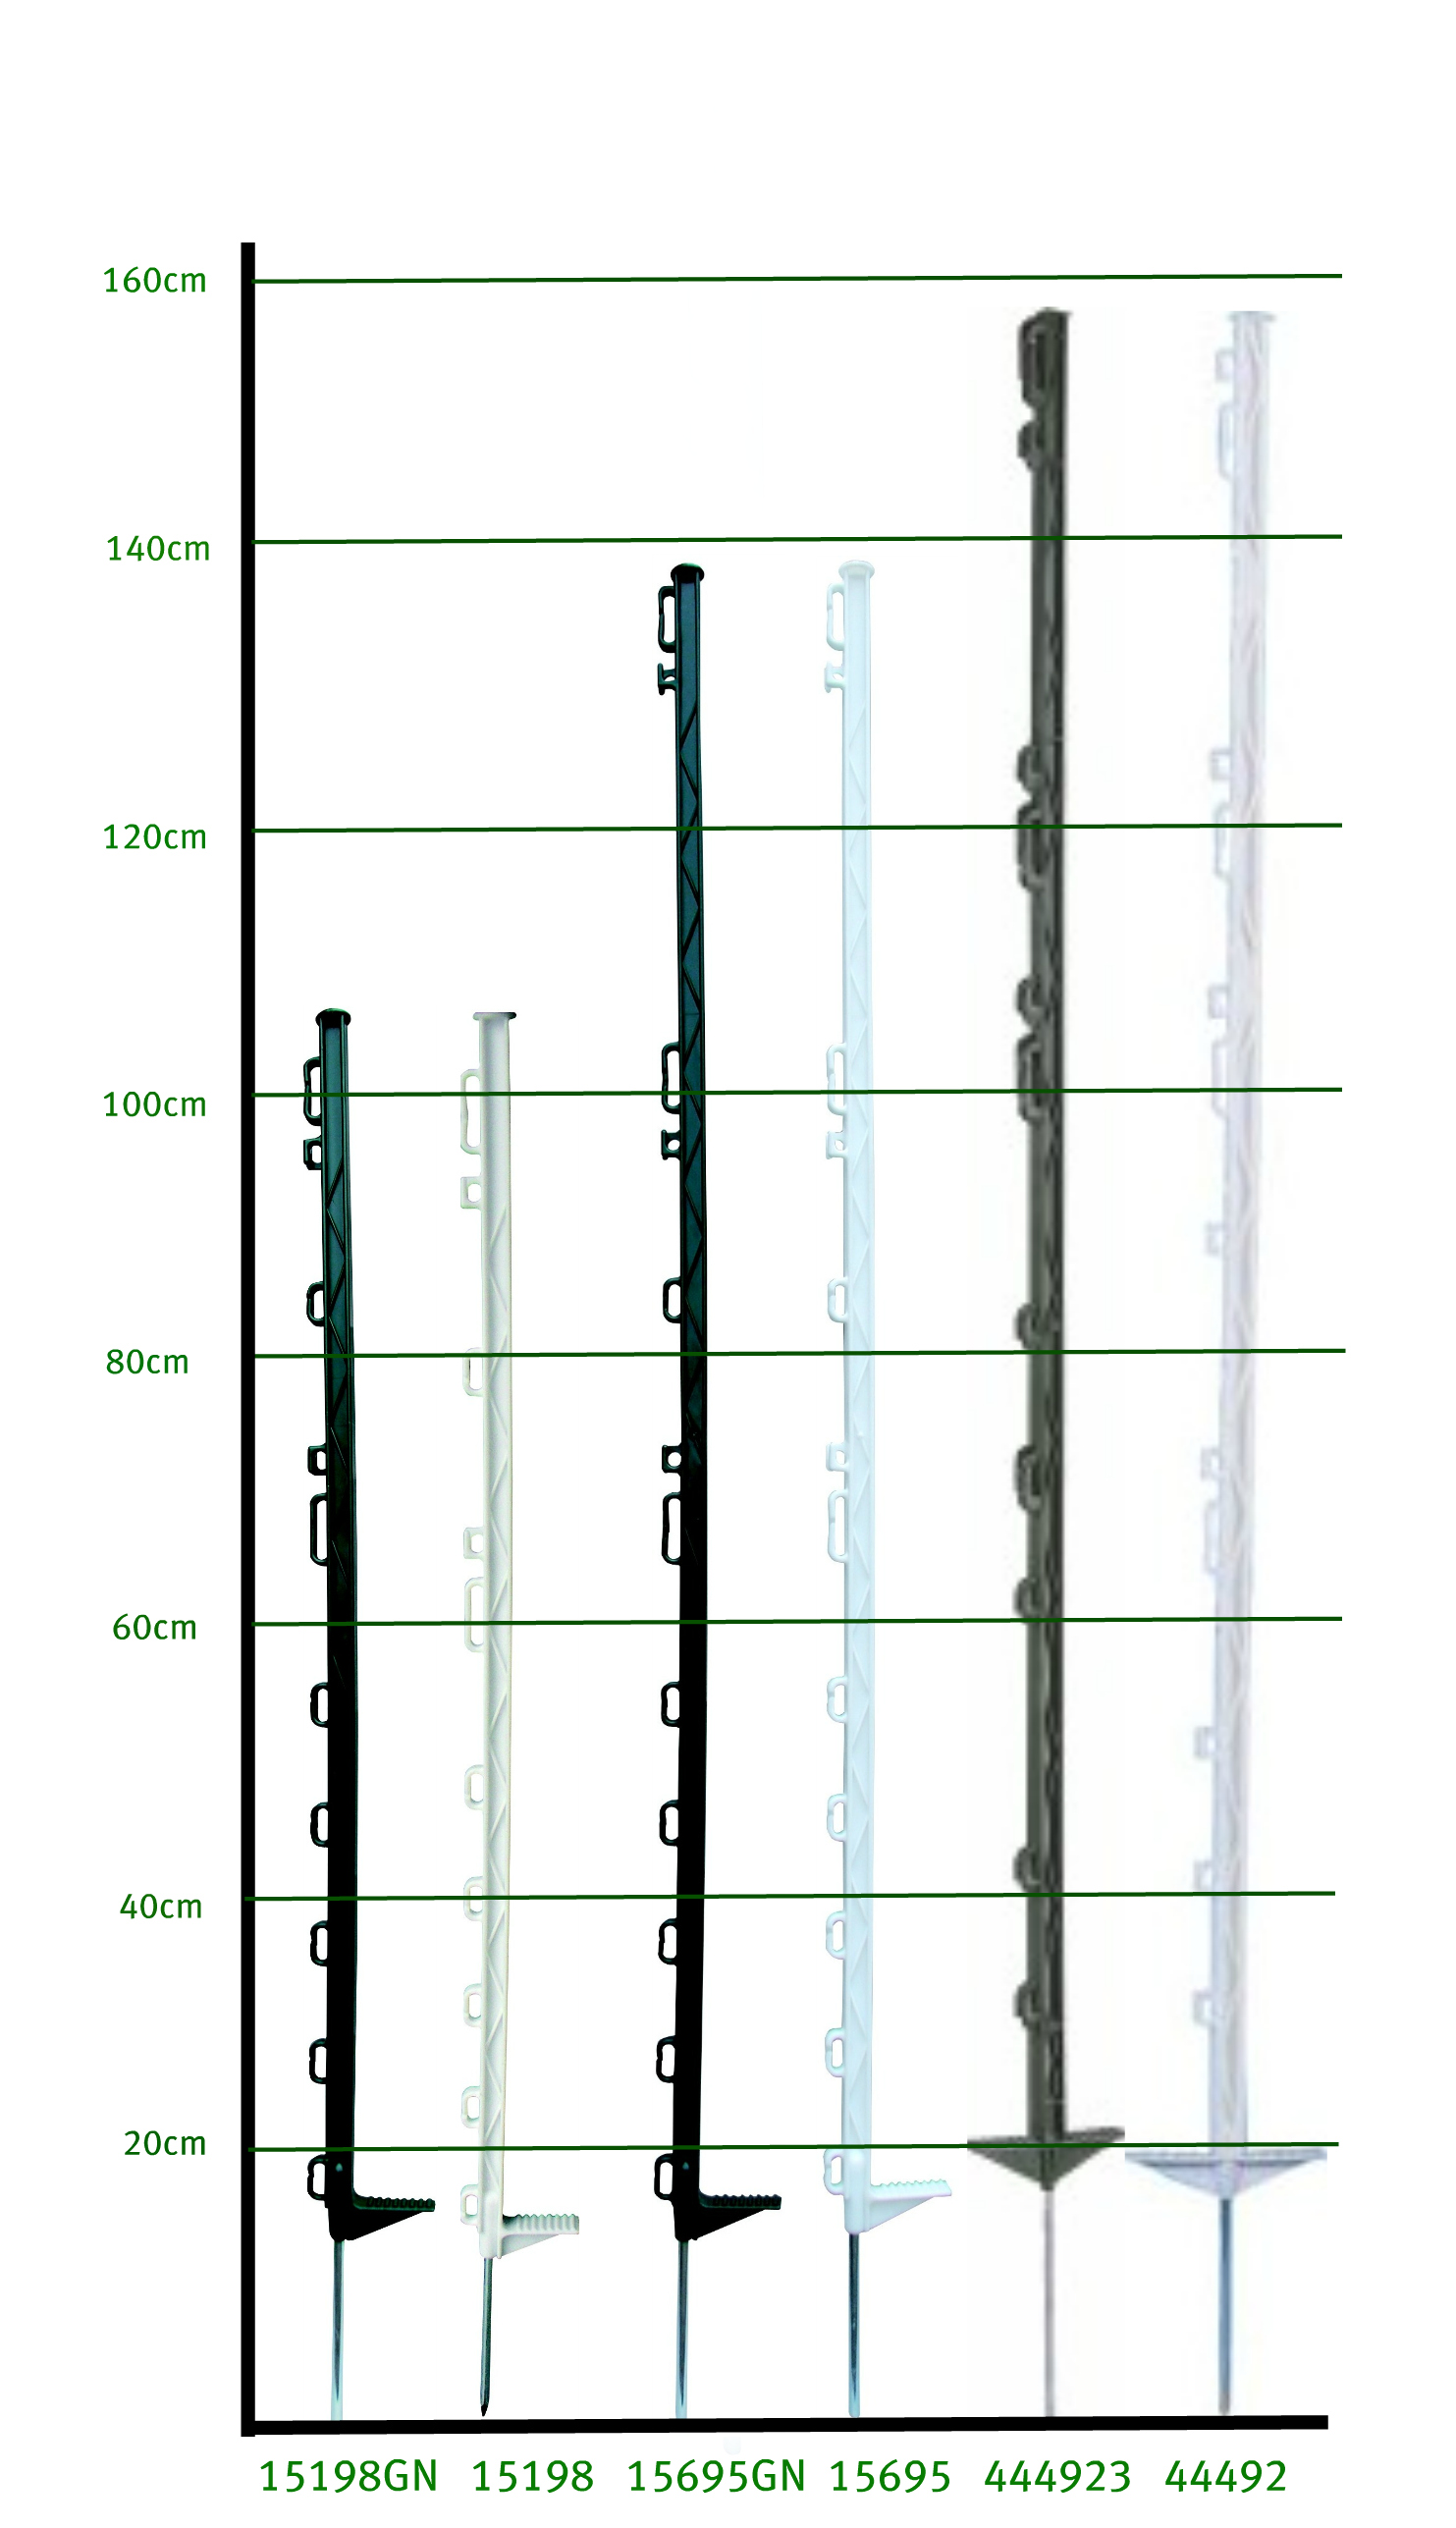 Electric Fence Posts Height